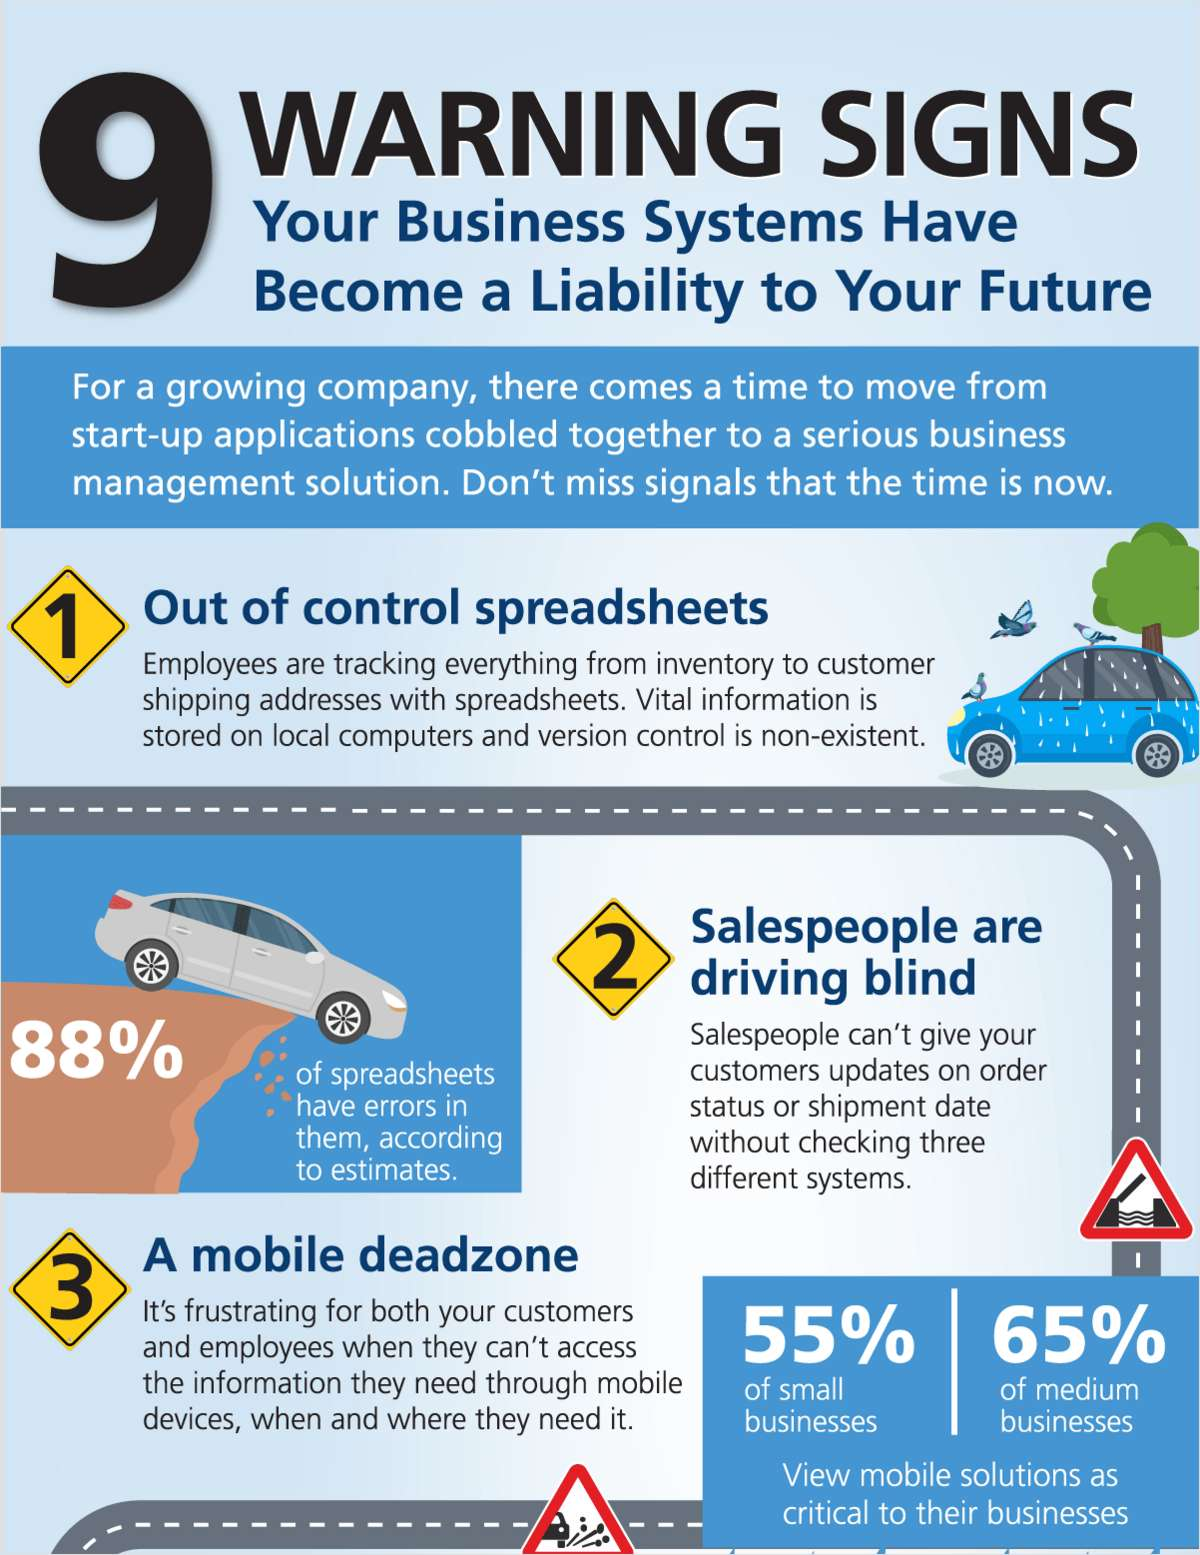 9 Warning Signs Your Business Systems Have Become a Liability to Your Future